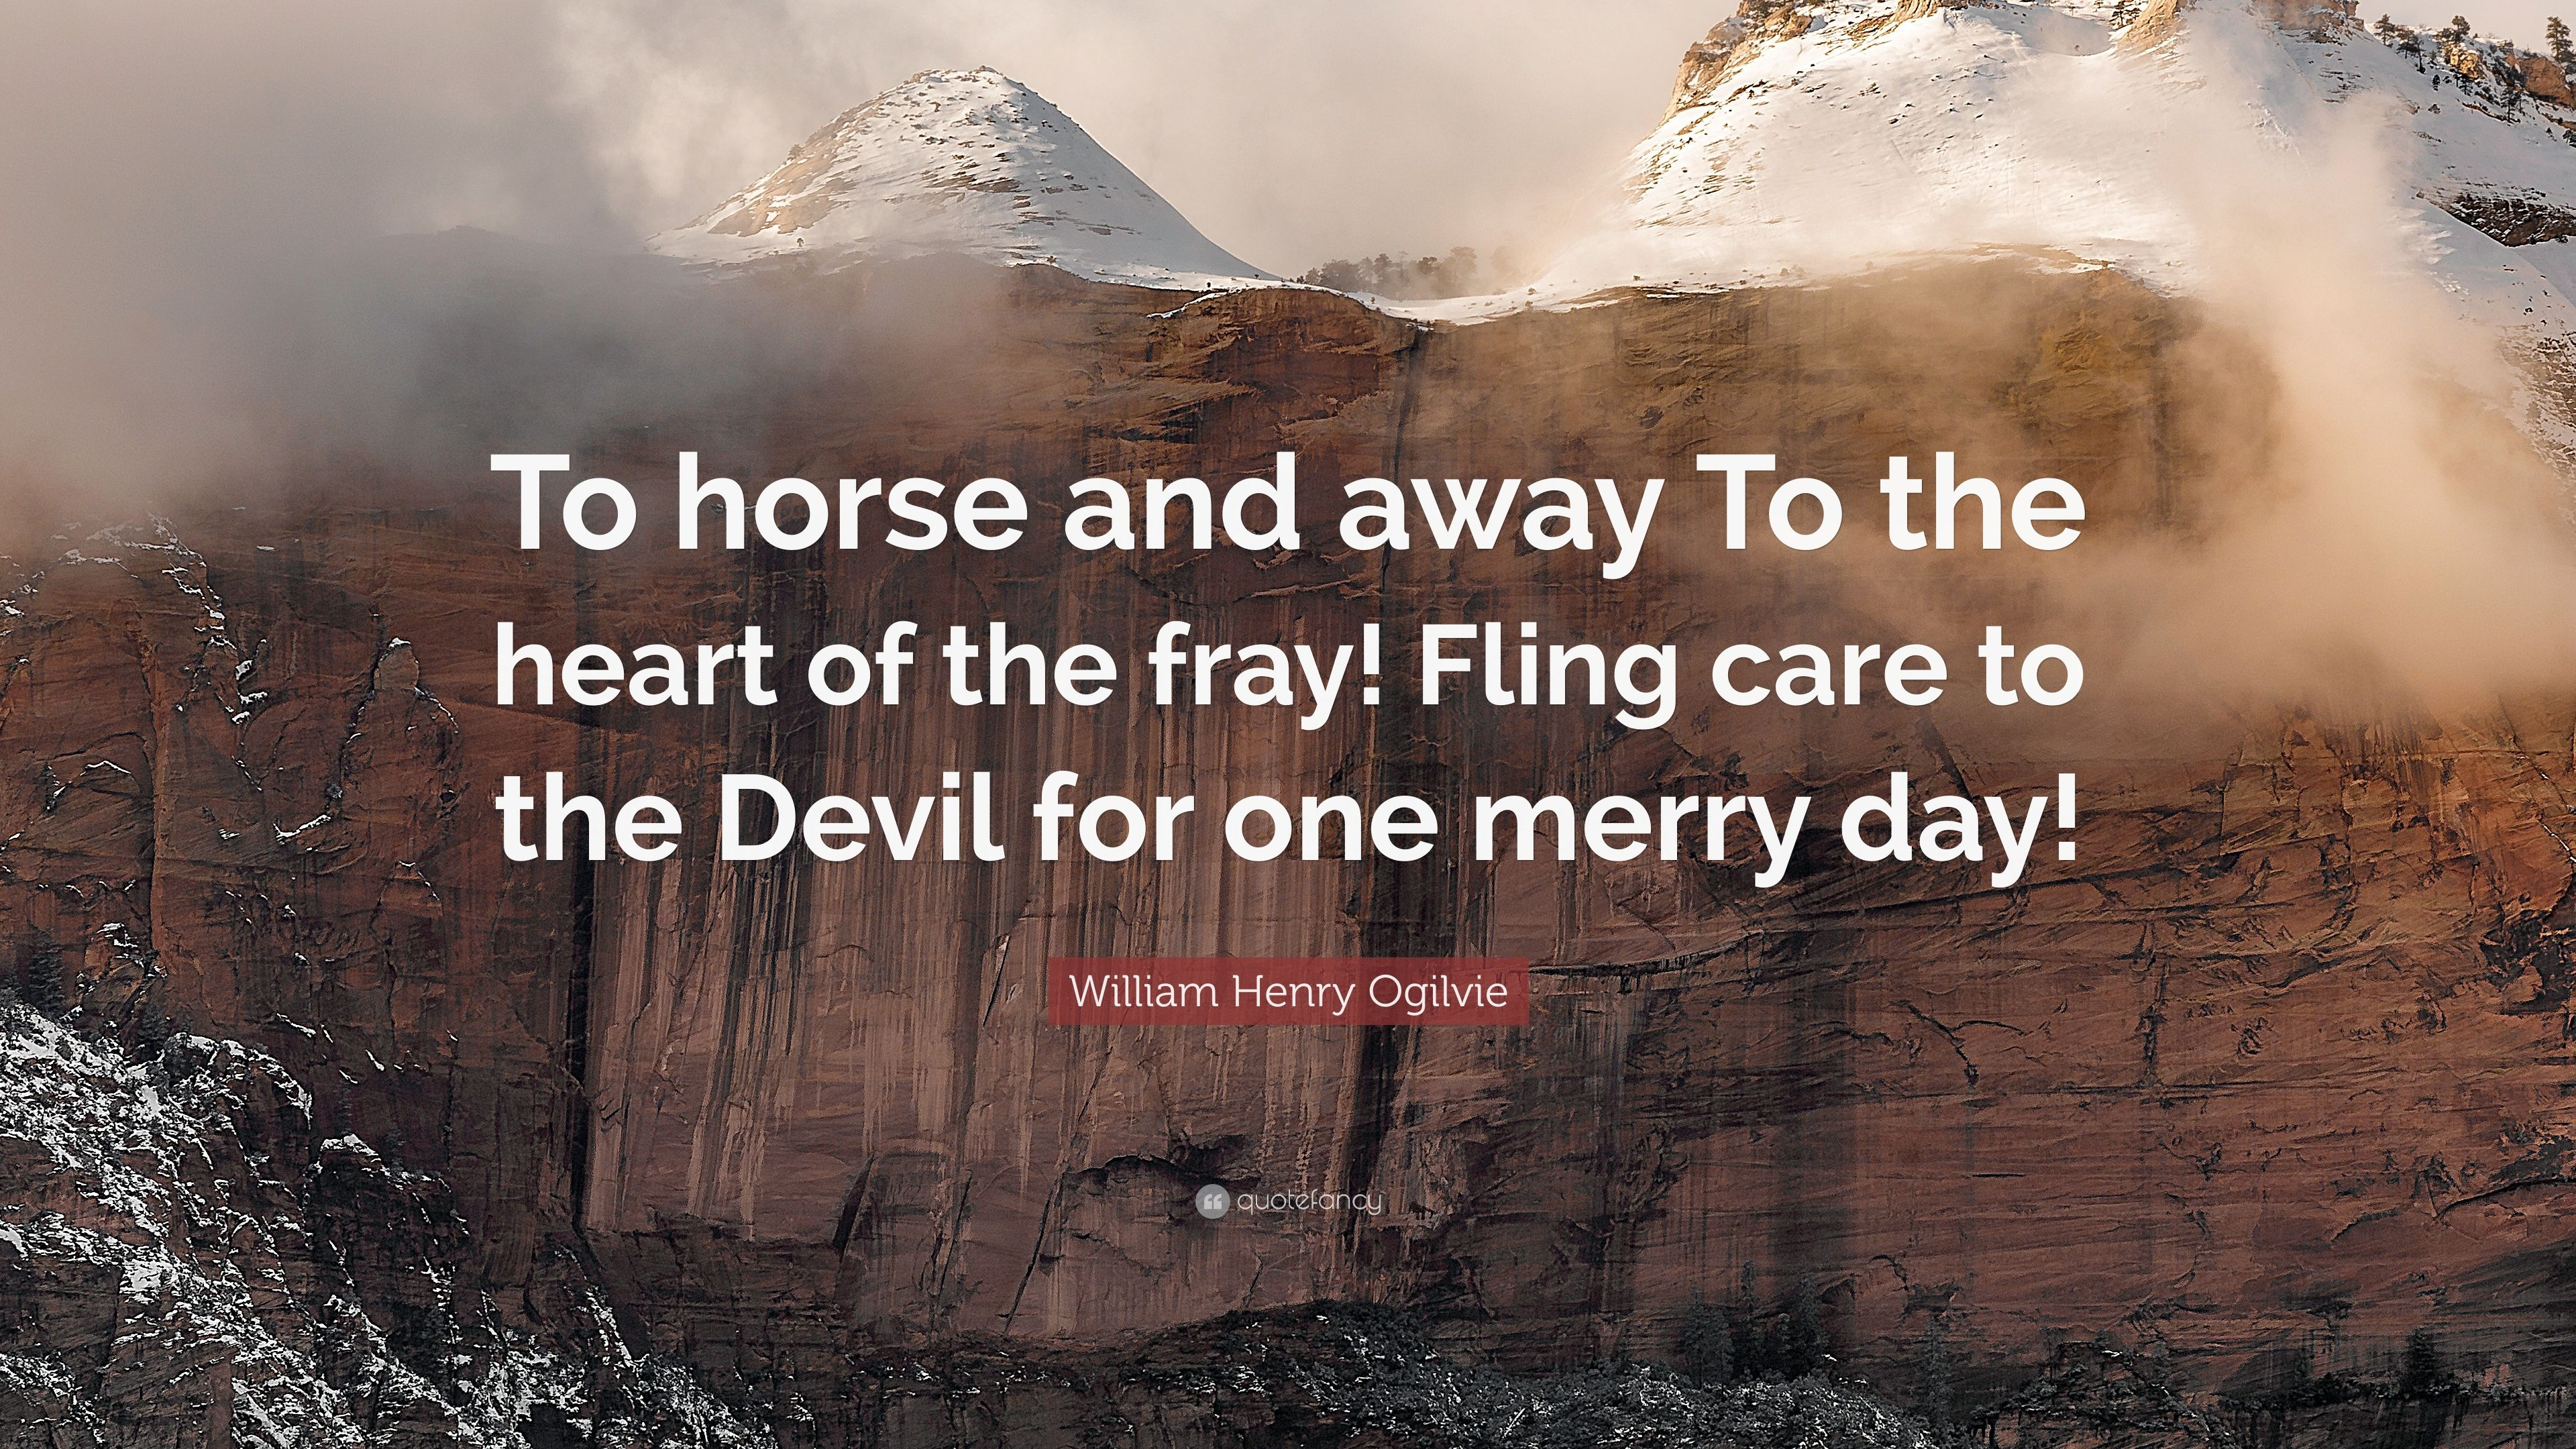 William Henry Ogilvie Quote To Horse And Away To The Heart Of The Fray Fling Care To The Devil For One Merry Day 7 Wallpapers Quotefancy